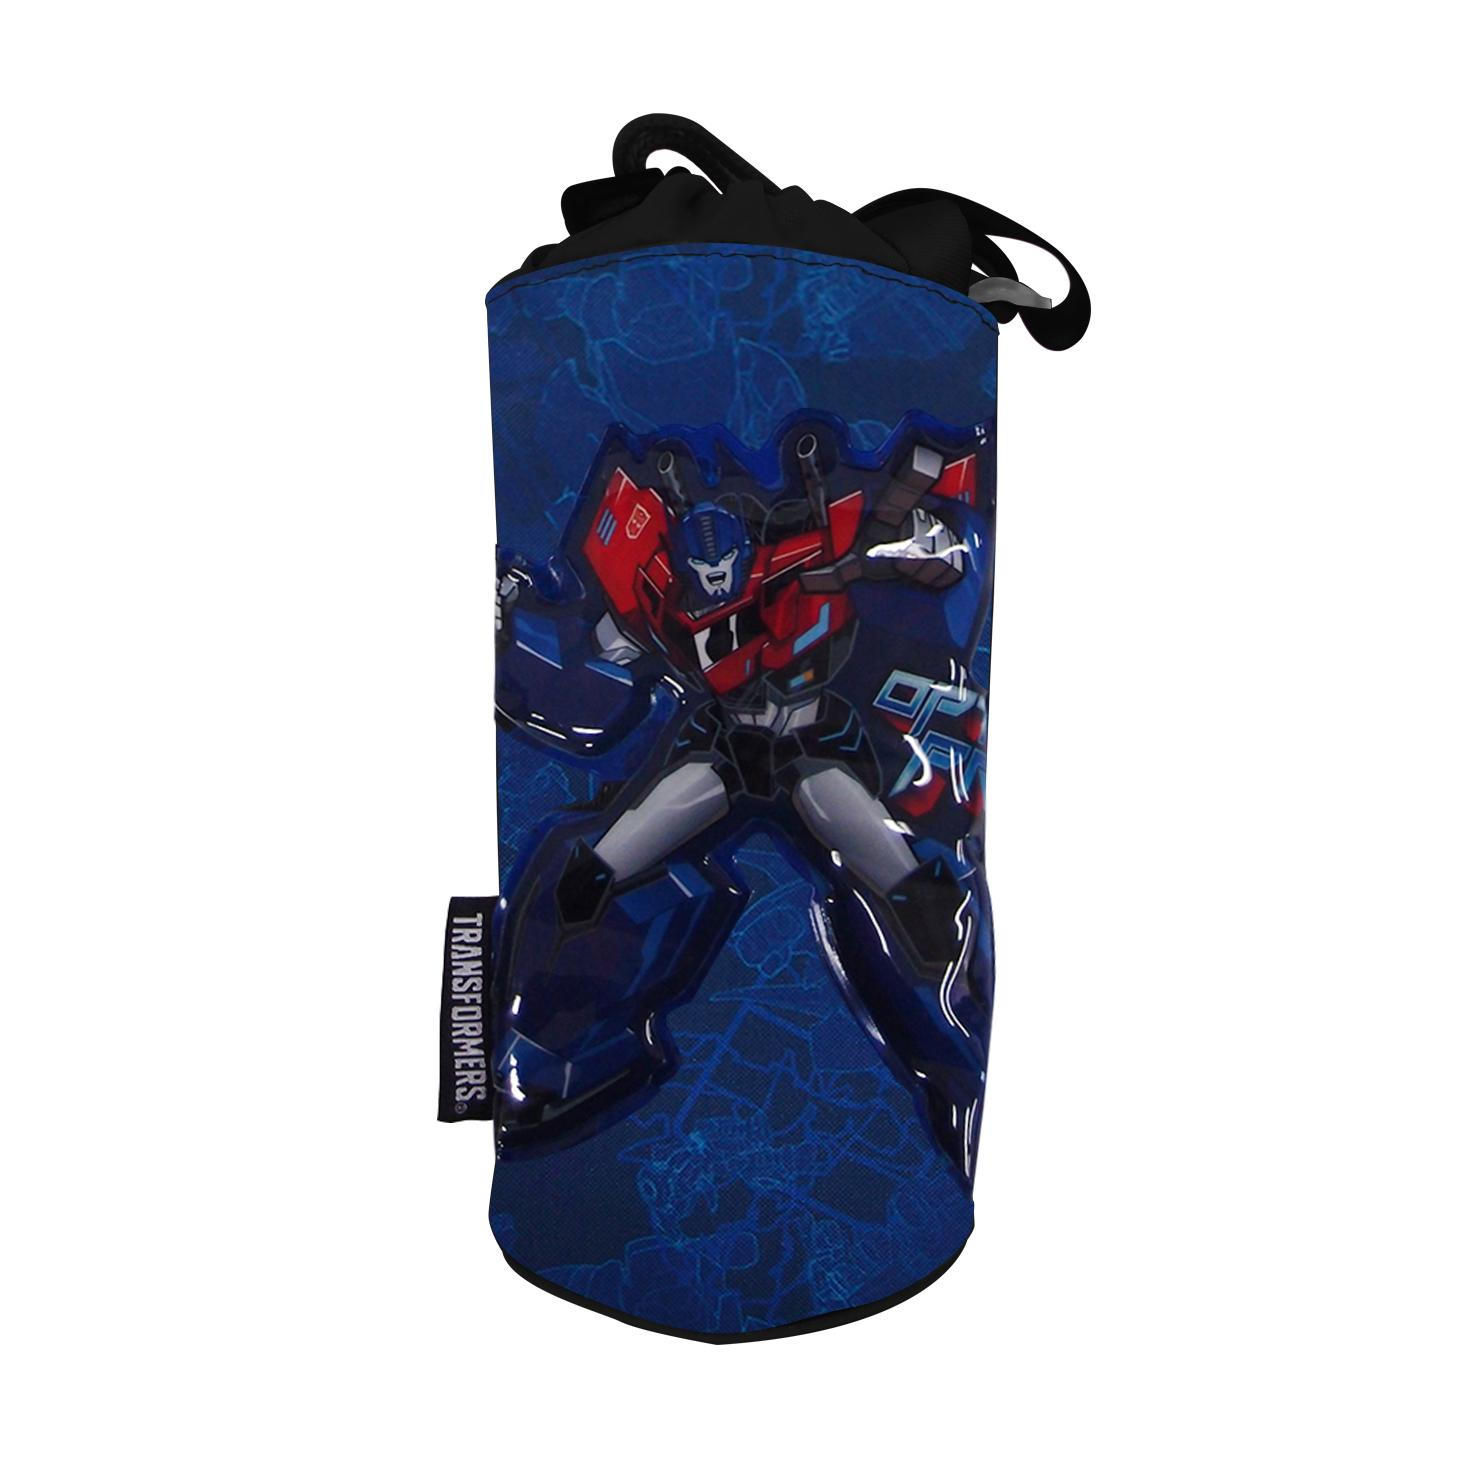 Transformers water bottle bag